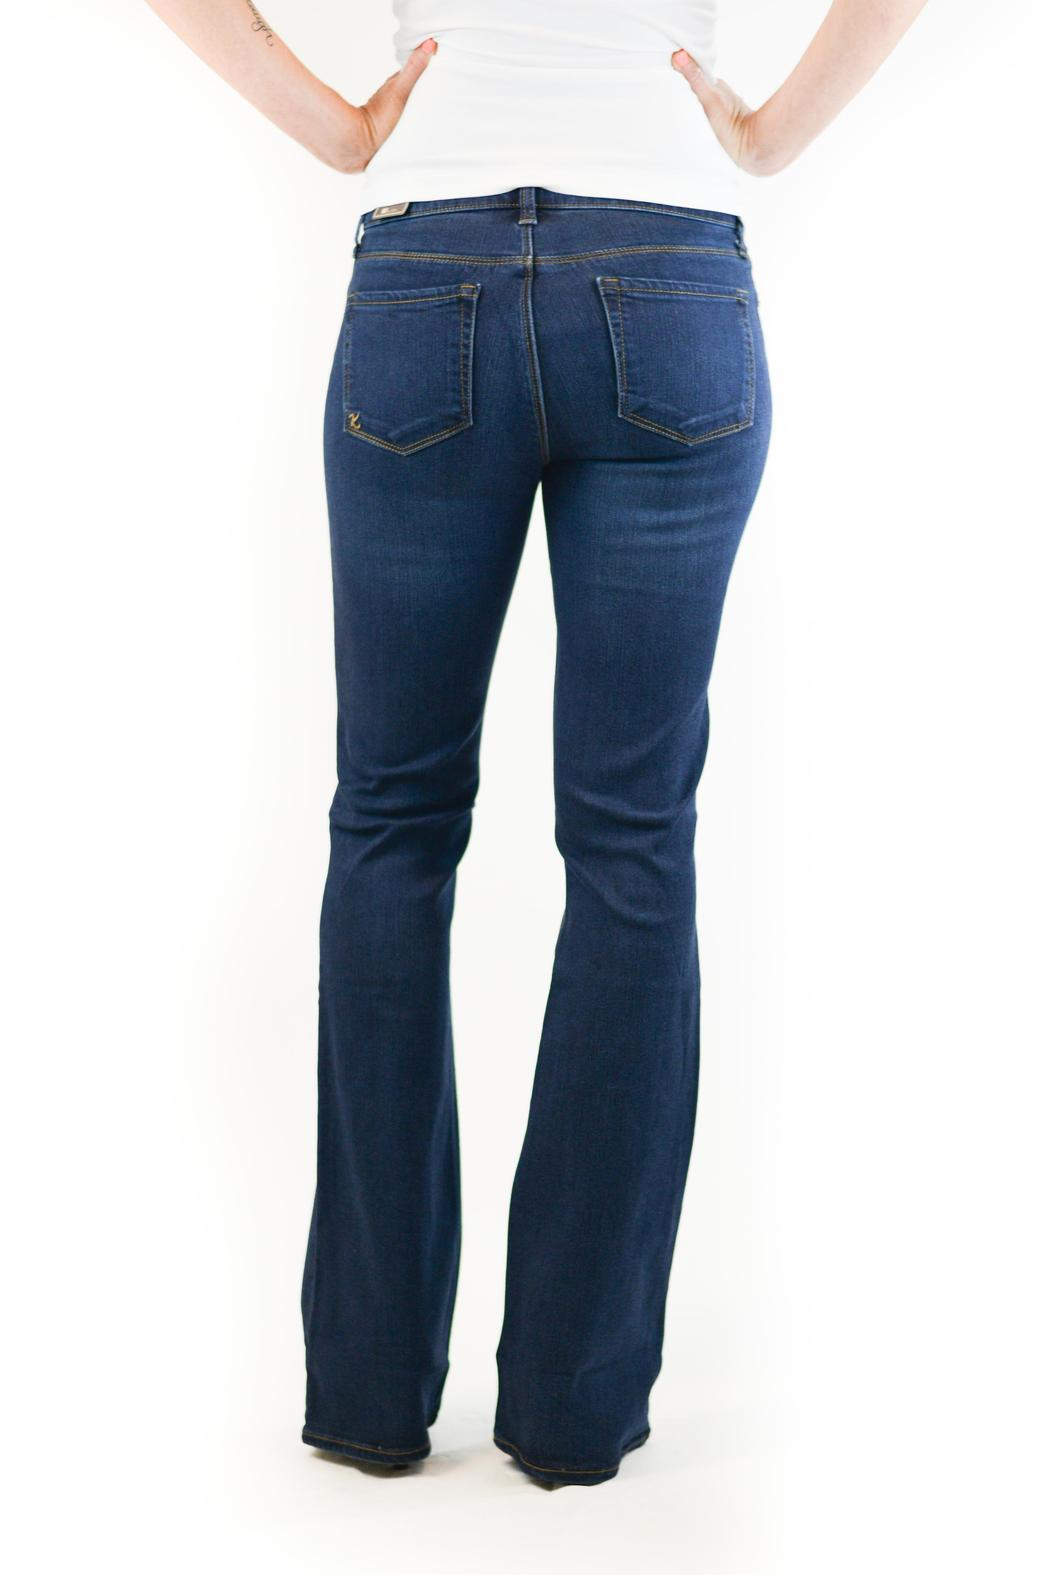 Kut from the Kloth Slim Bootcut Denim - Back Cropped Image